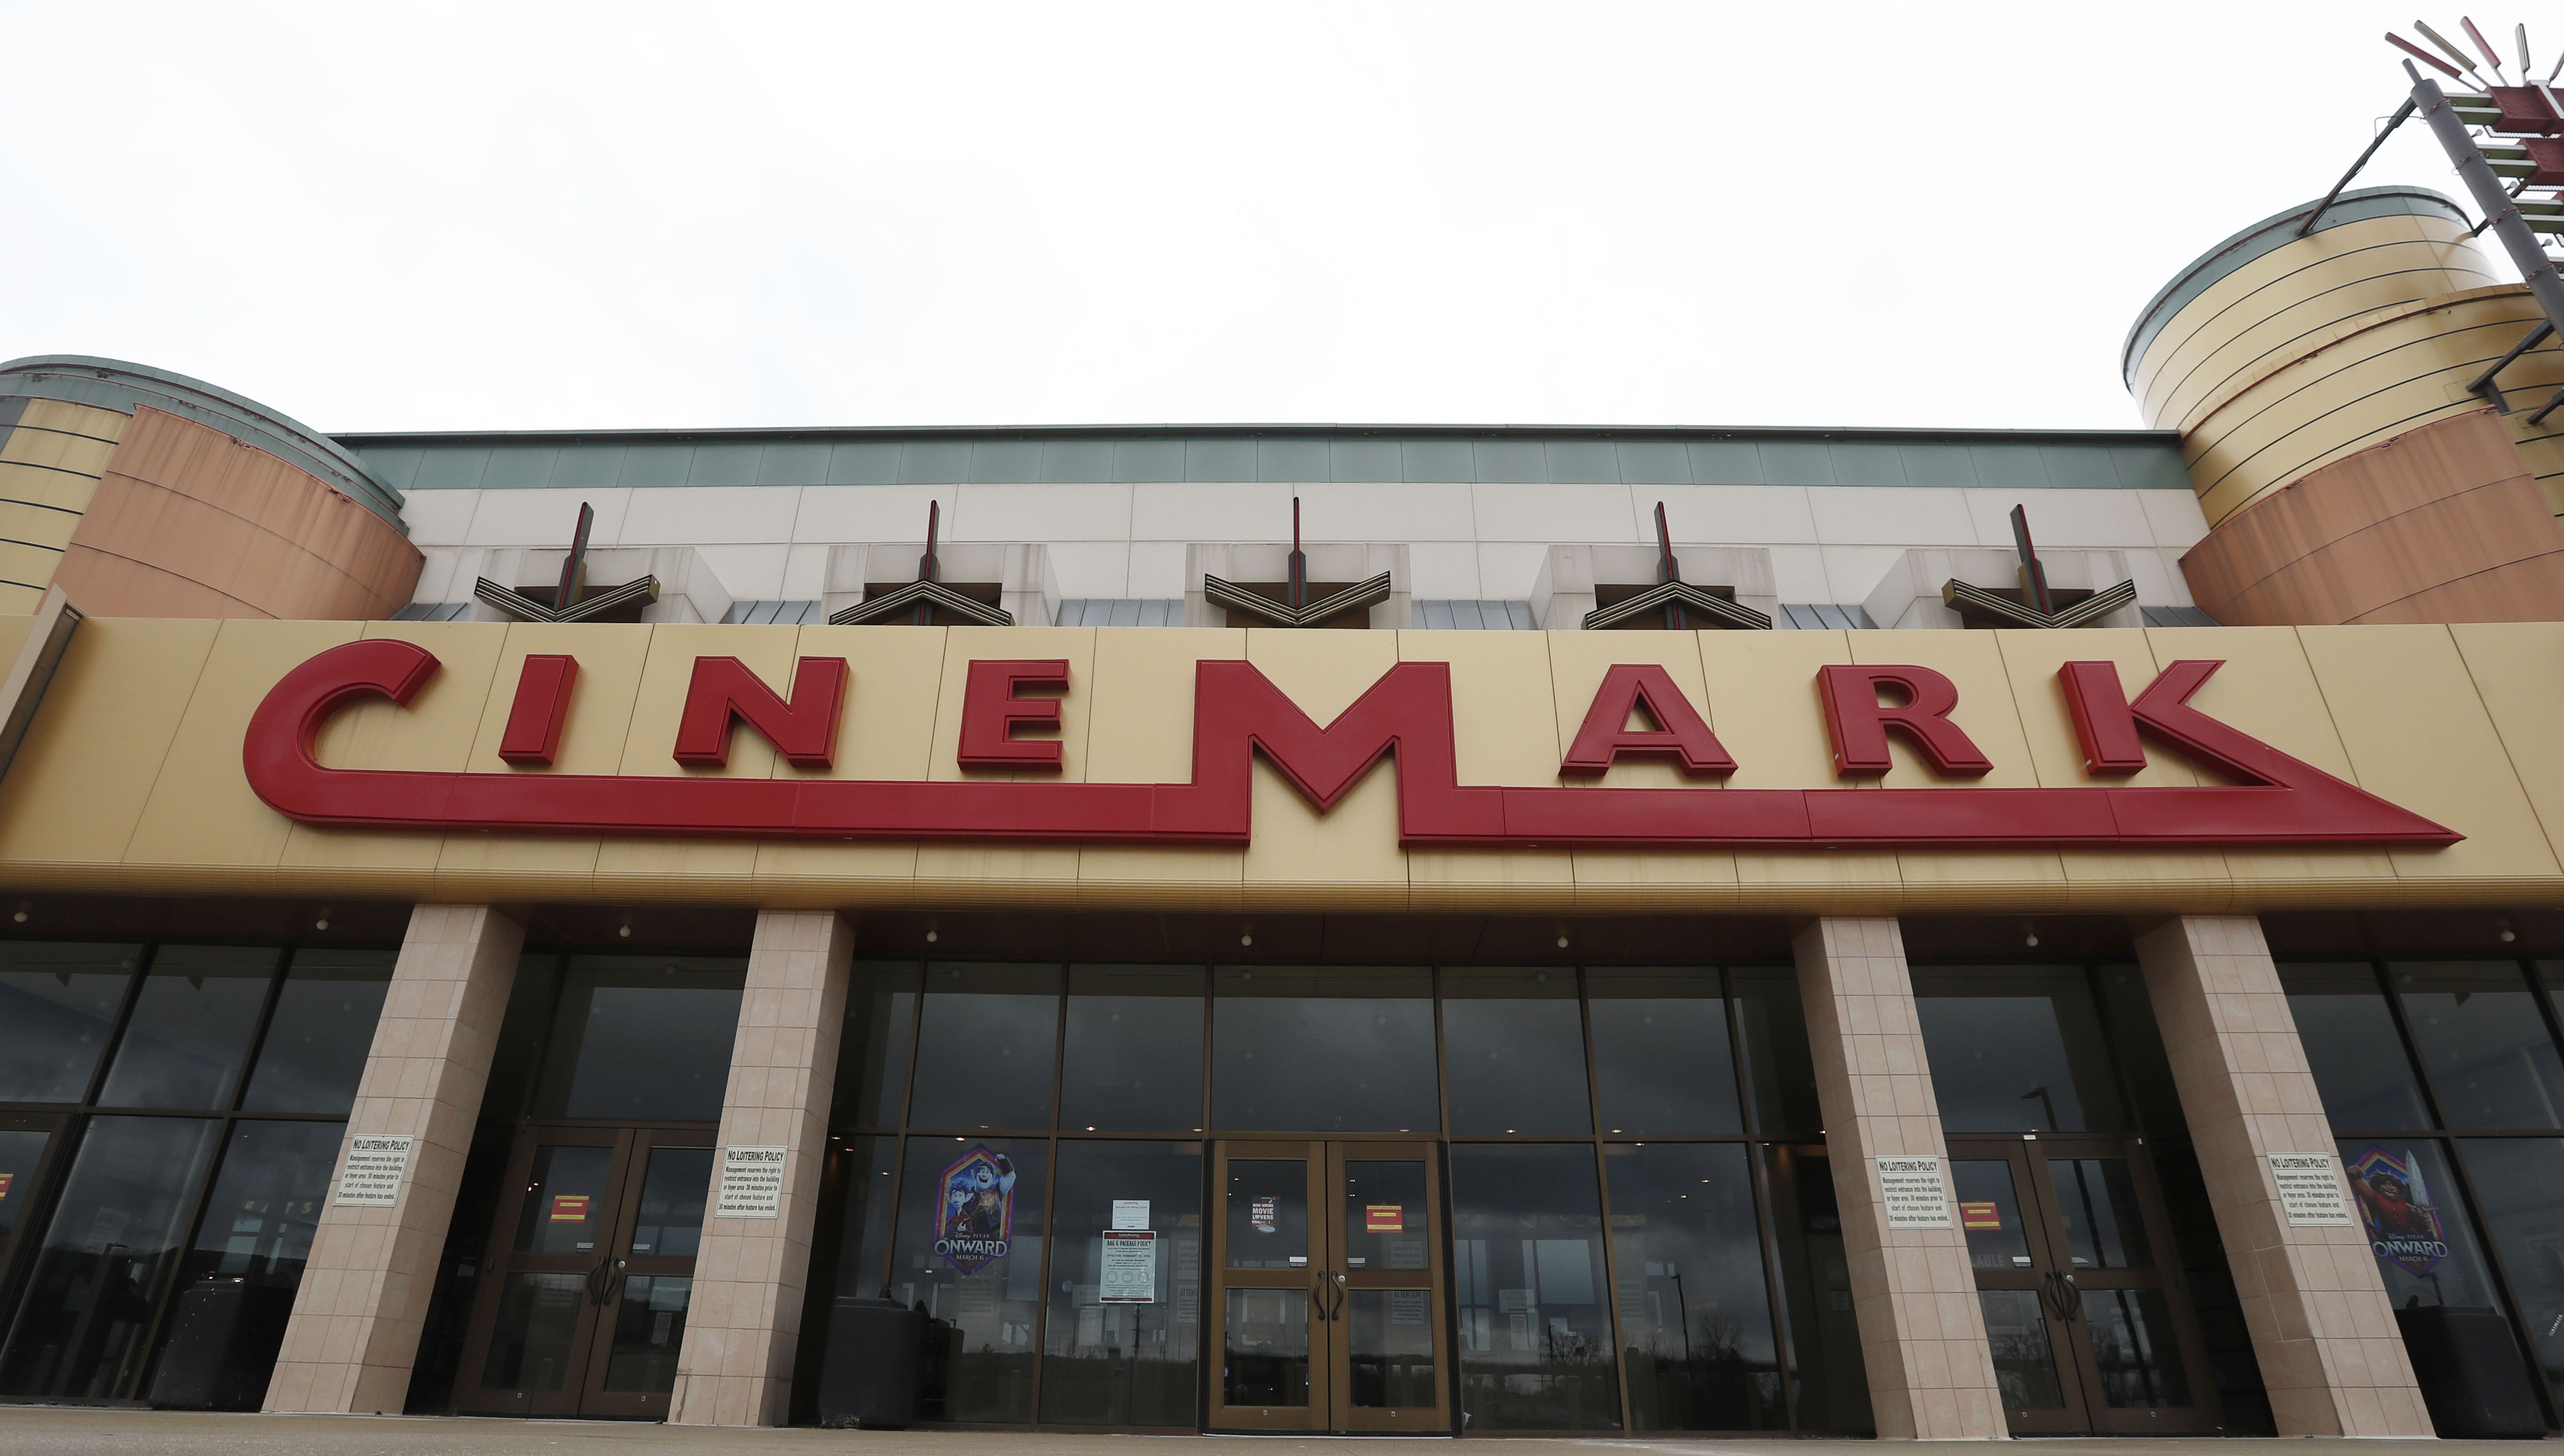 Movie Theaters Are Reopening With New Movies What You Need To Know Cleveland Com Amc summer movie camp ridge park square wkyc channel 3 news report. movie theaters are reopening with new movies what you need to know cleveland com